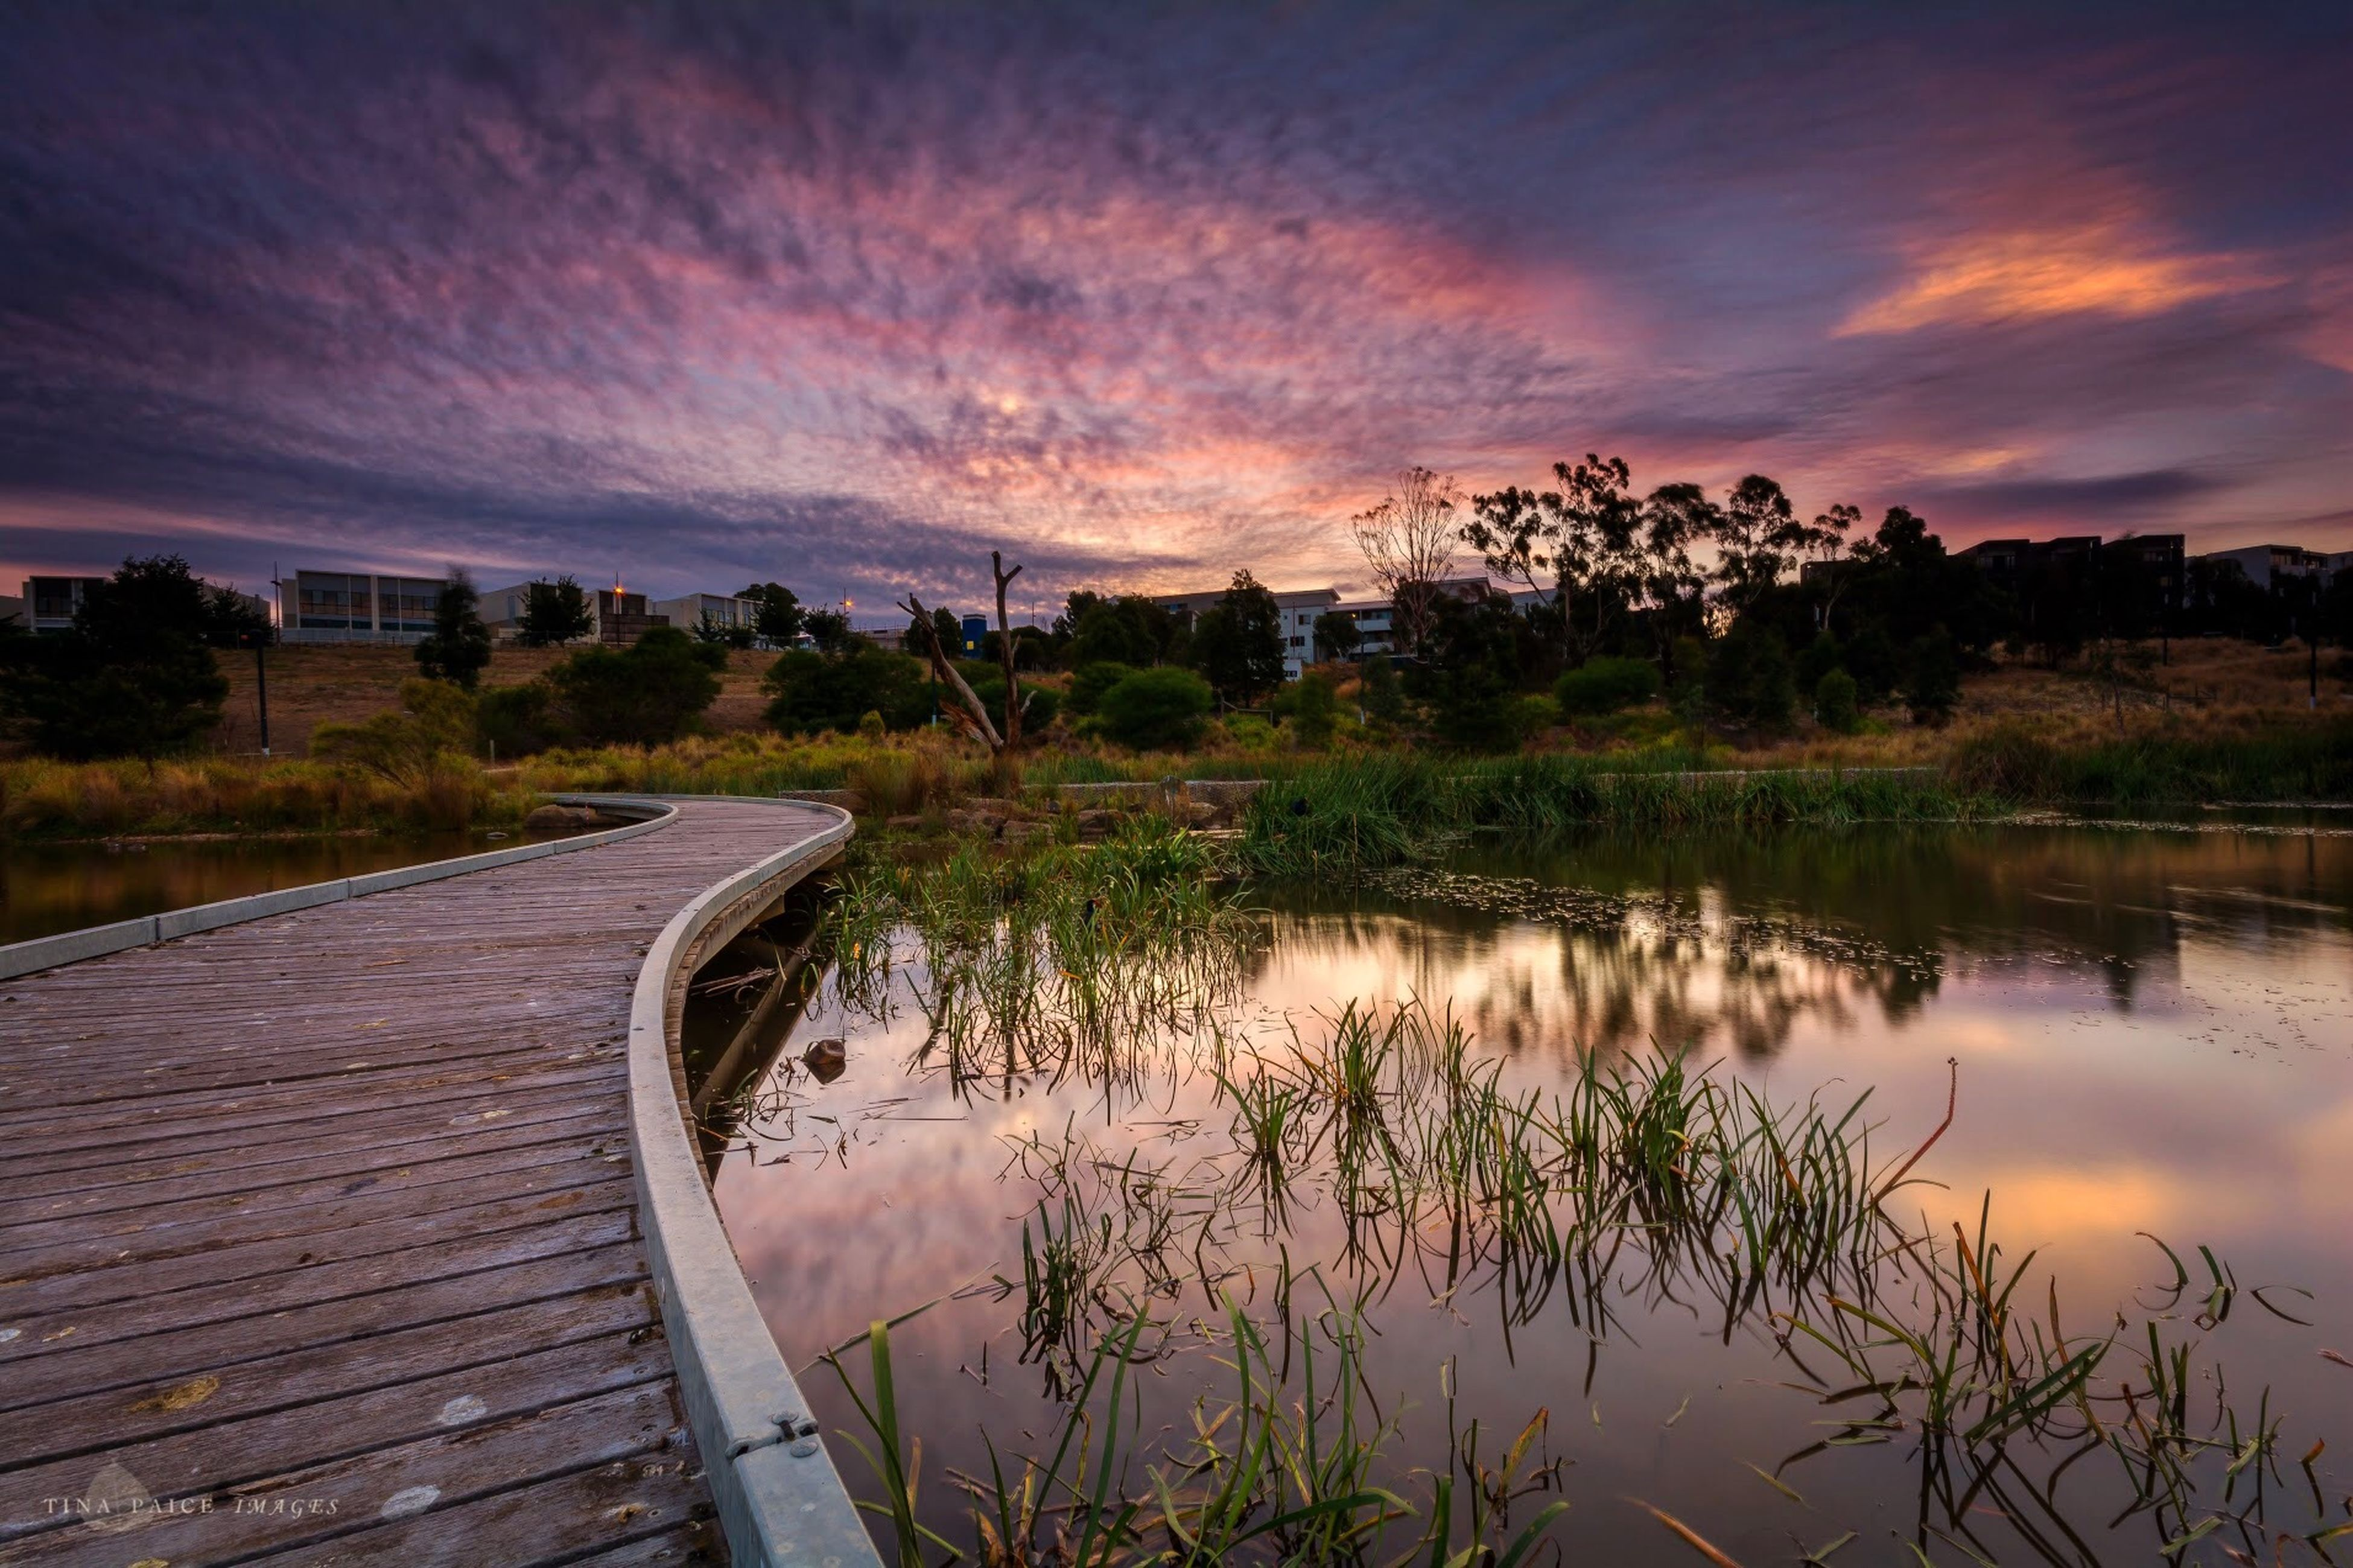 water, sky, sunset, reflection, cloud - sky, lake, tranquility, tranquil scene, tree, scenics, beauty in nature, nature, cloudy, cloud, river, idyllic, orange color, outdoors, plant, dramatic sky